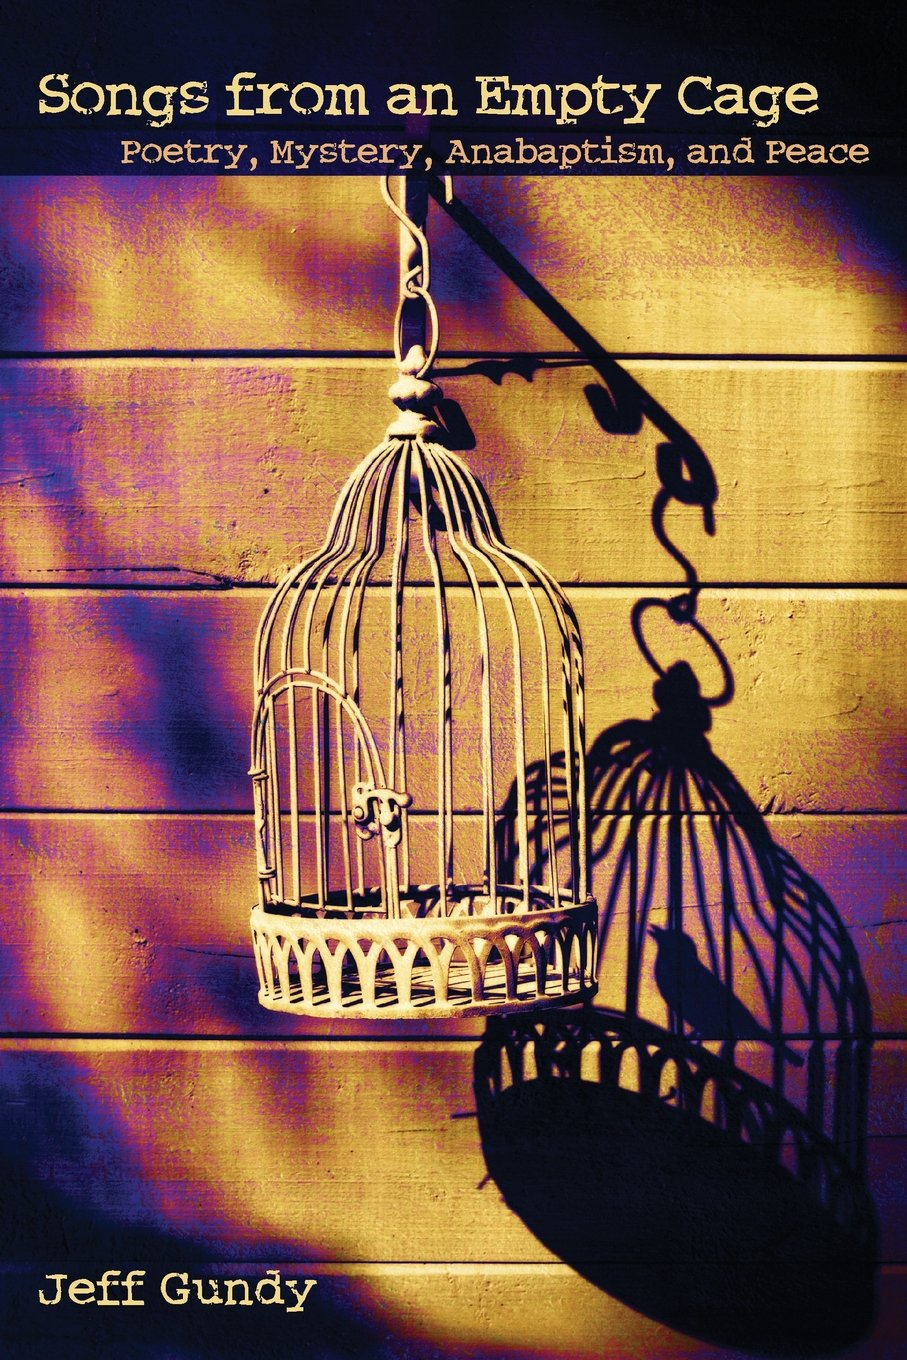 Songs from an Empty Cage: Poetry, Mystery, Anabaptism, and Peace (C. Henry Smith) PDF ePub book